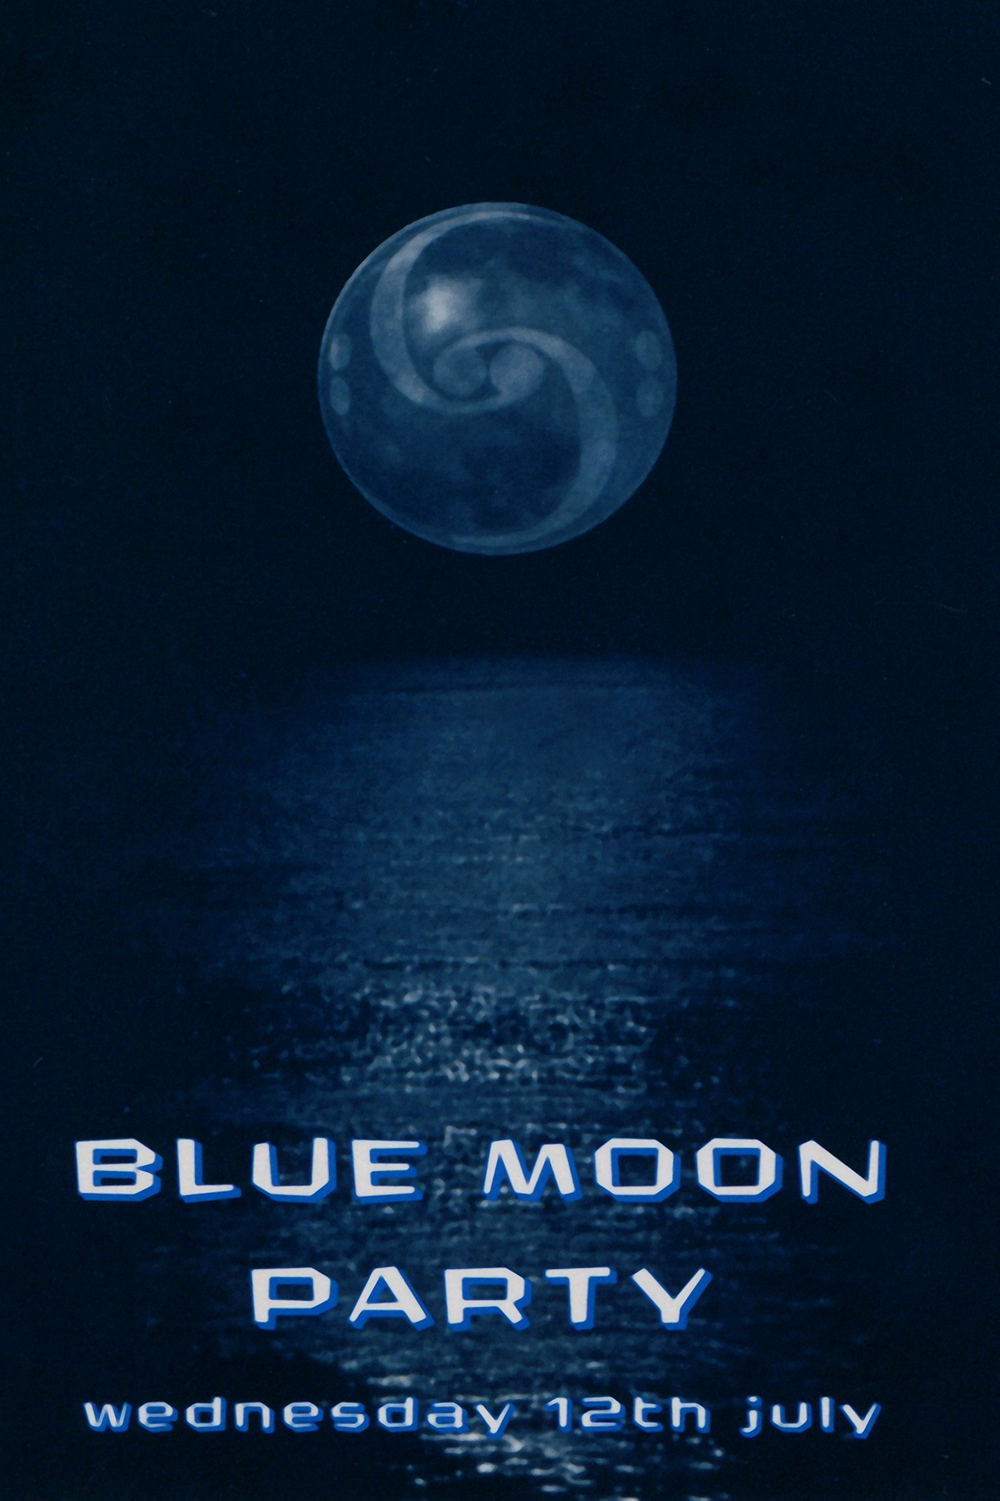 Blue Moon Party flyer 200.jpg